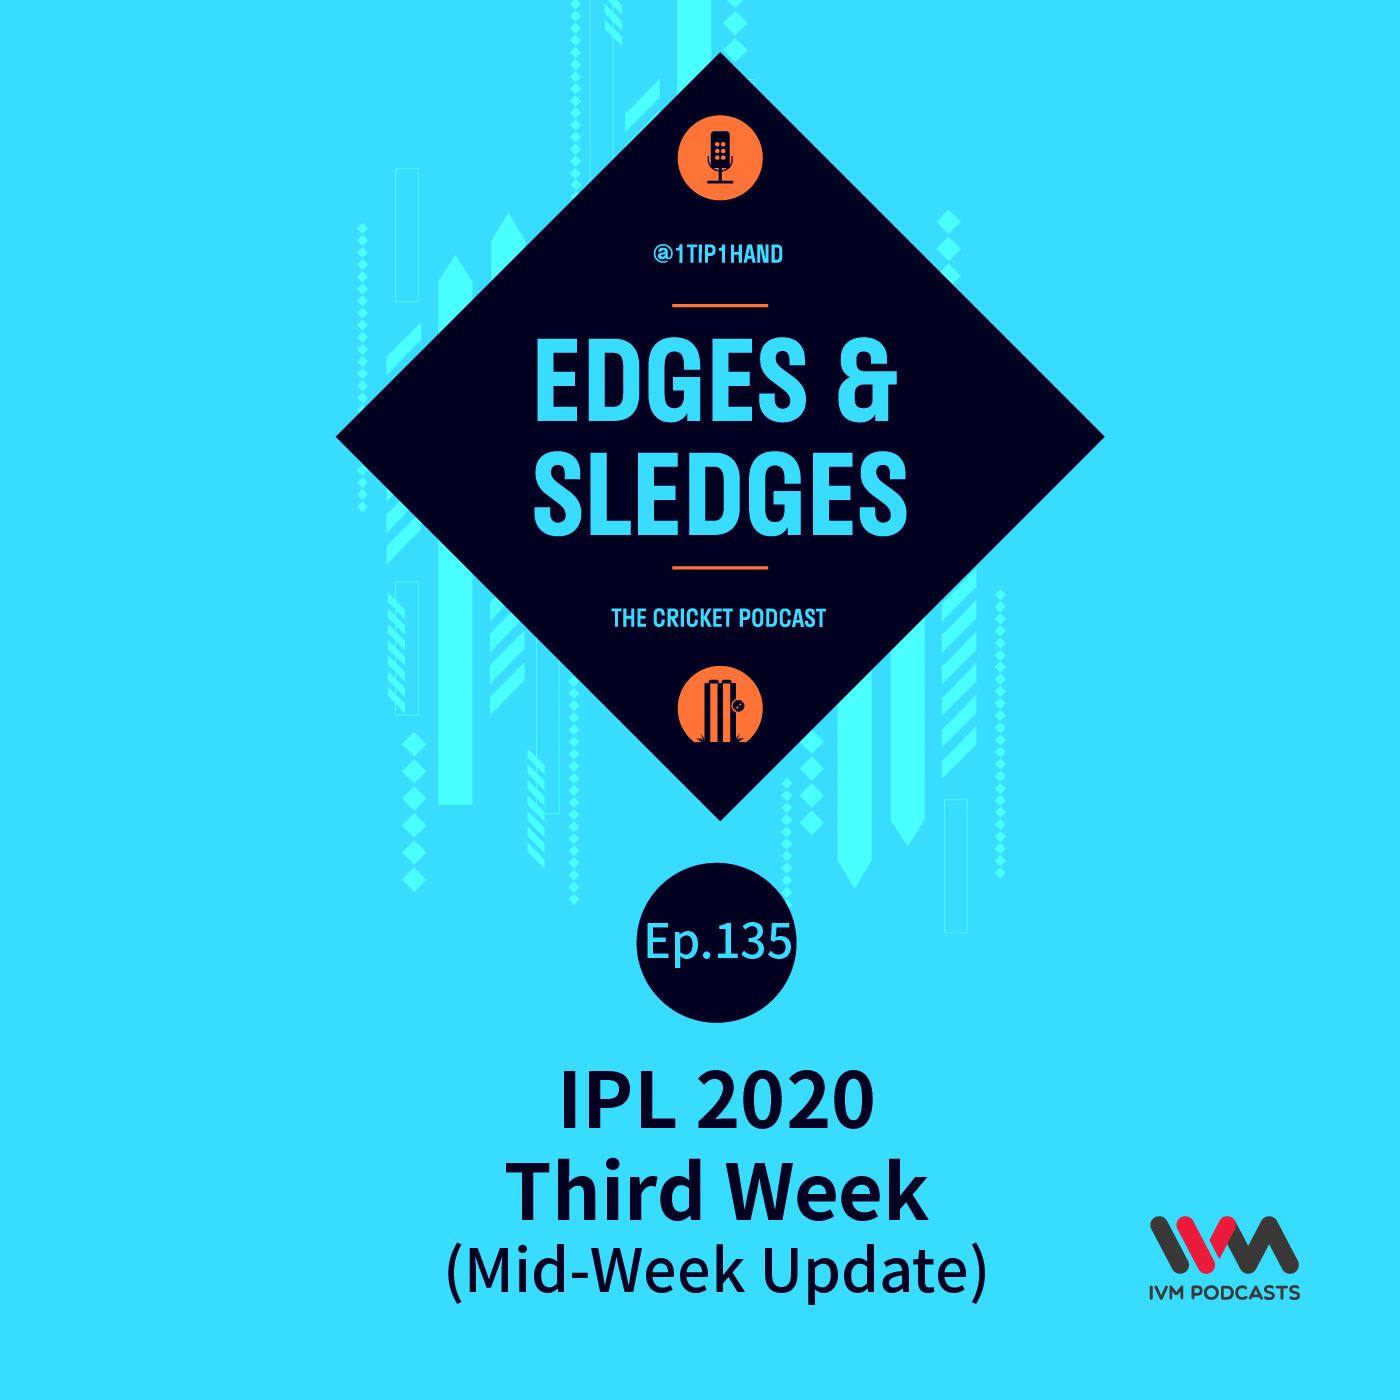 Ep. 135: IPL 2020 Third Week (Mid-Week Update)